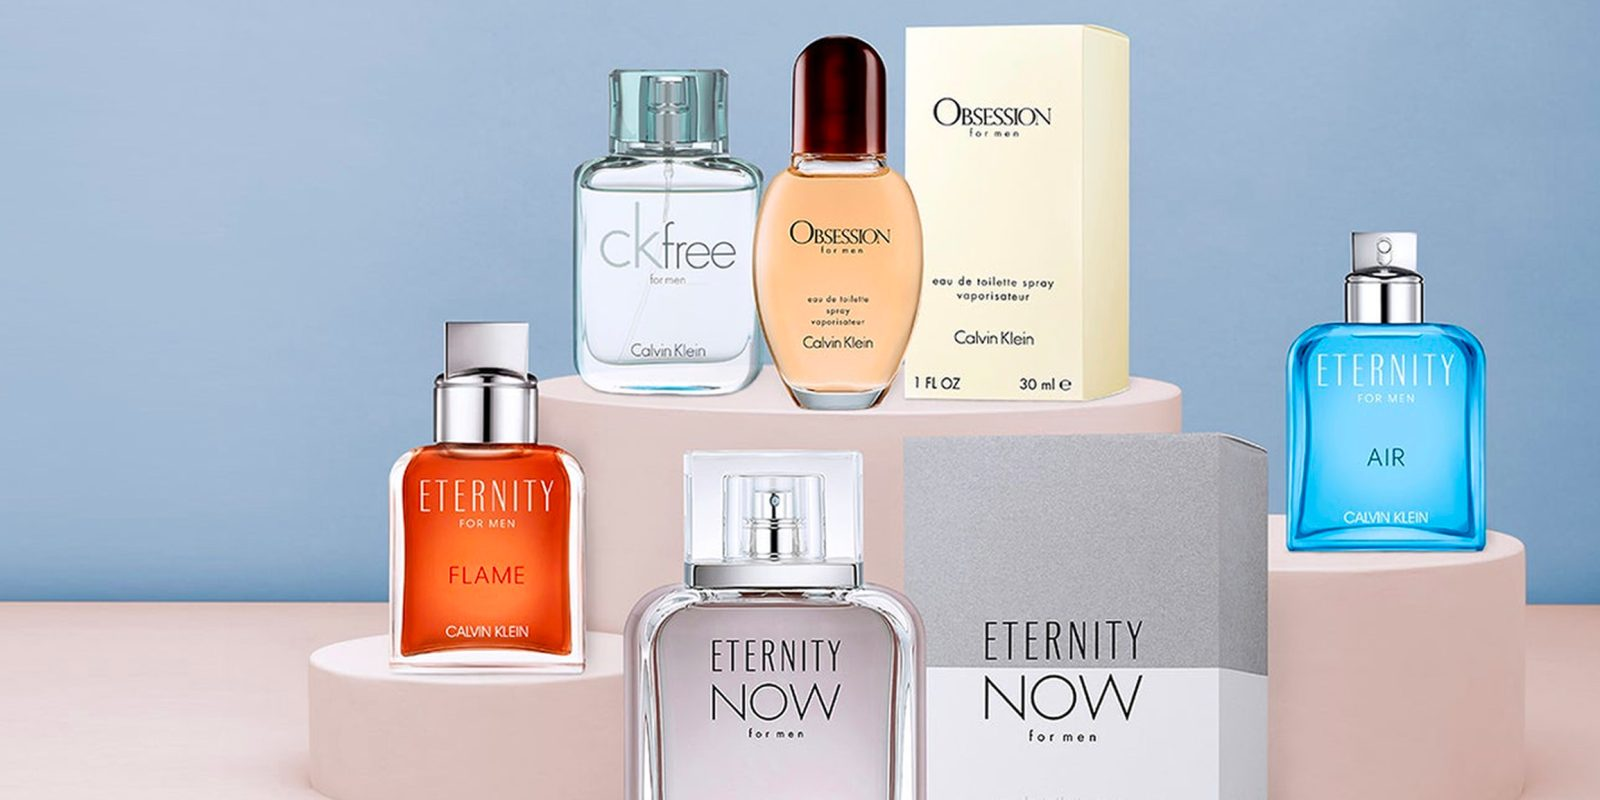 Refresh your cologne with up to 70% off Calvin Klein, Prada, more at Hautelook